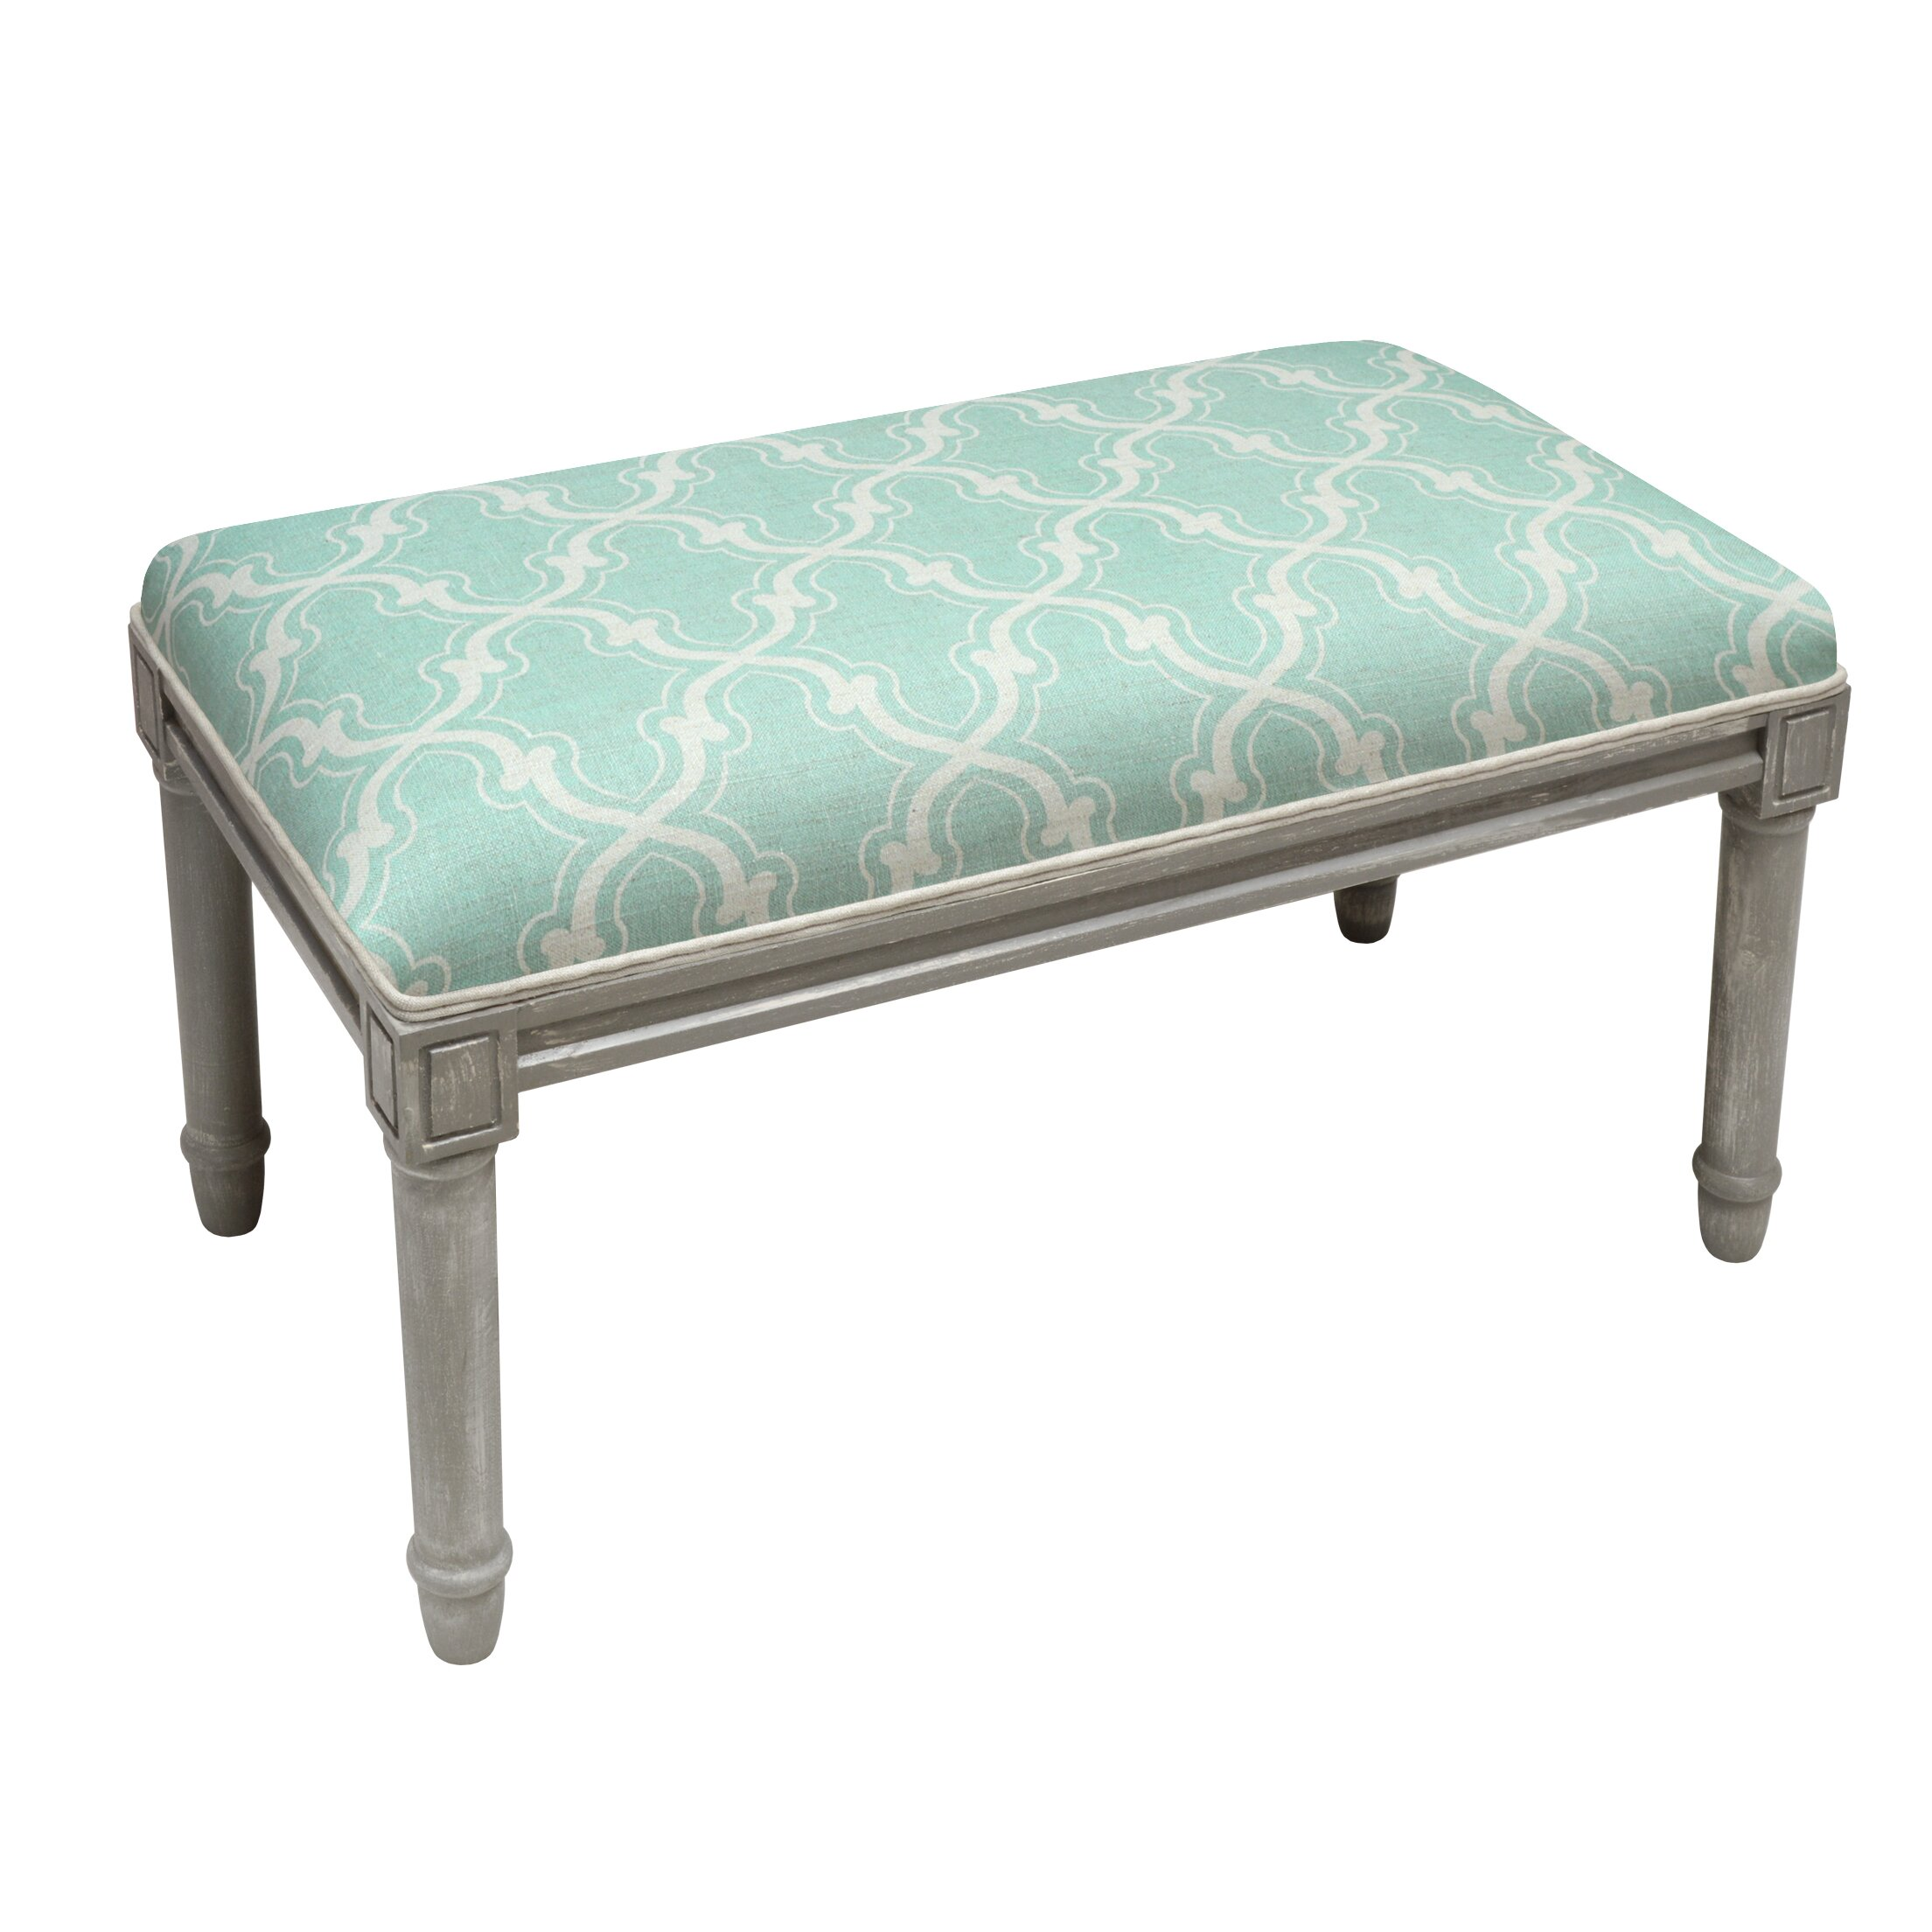 123 creations upholstered entryway bench wayfair Padded benches